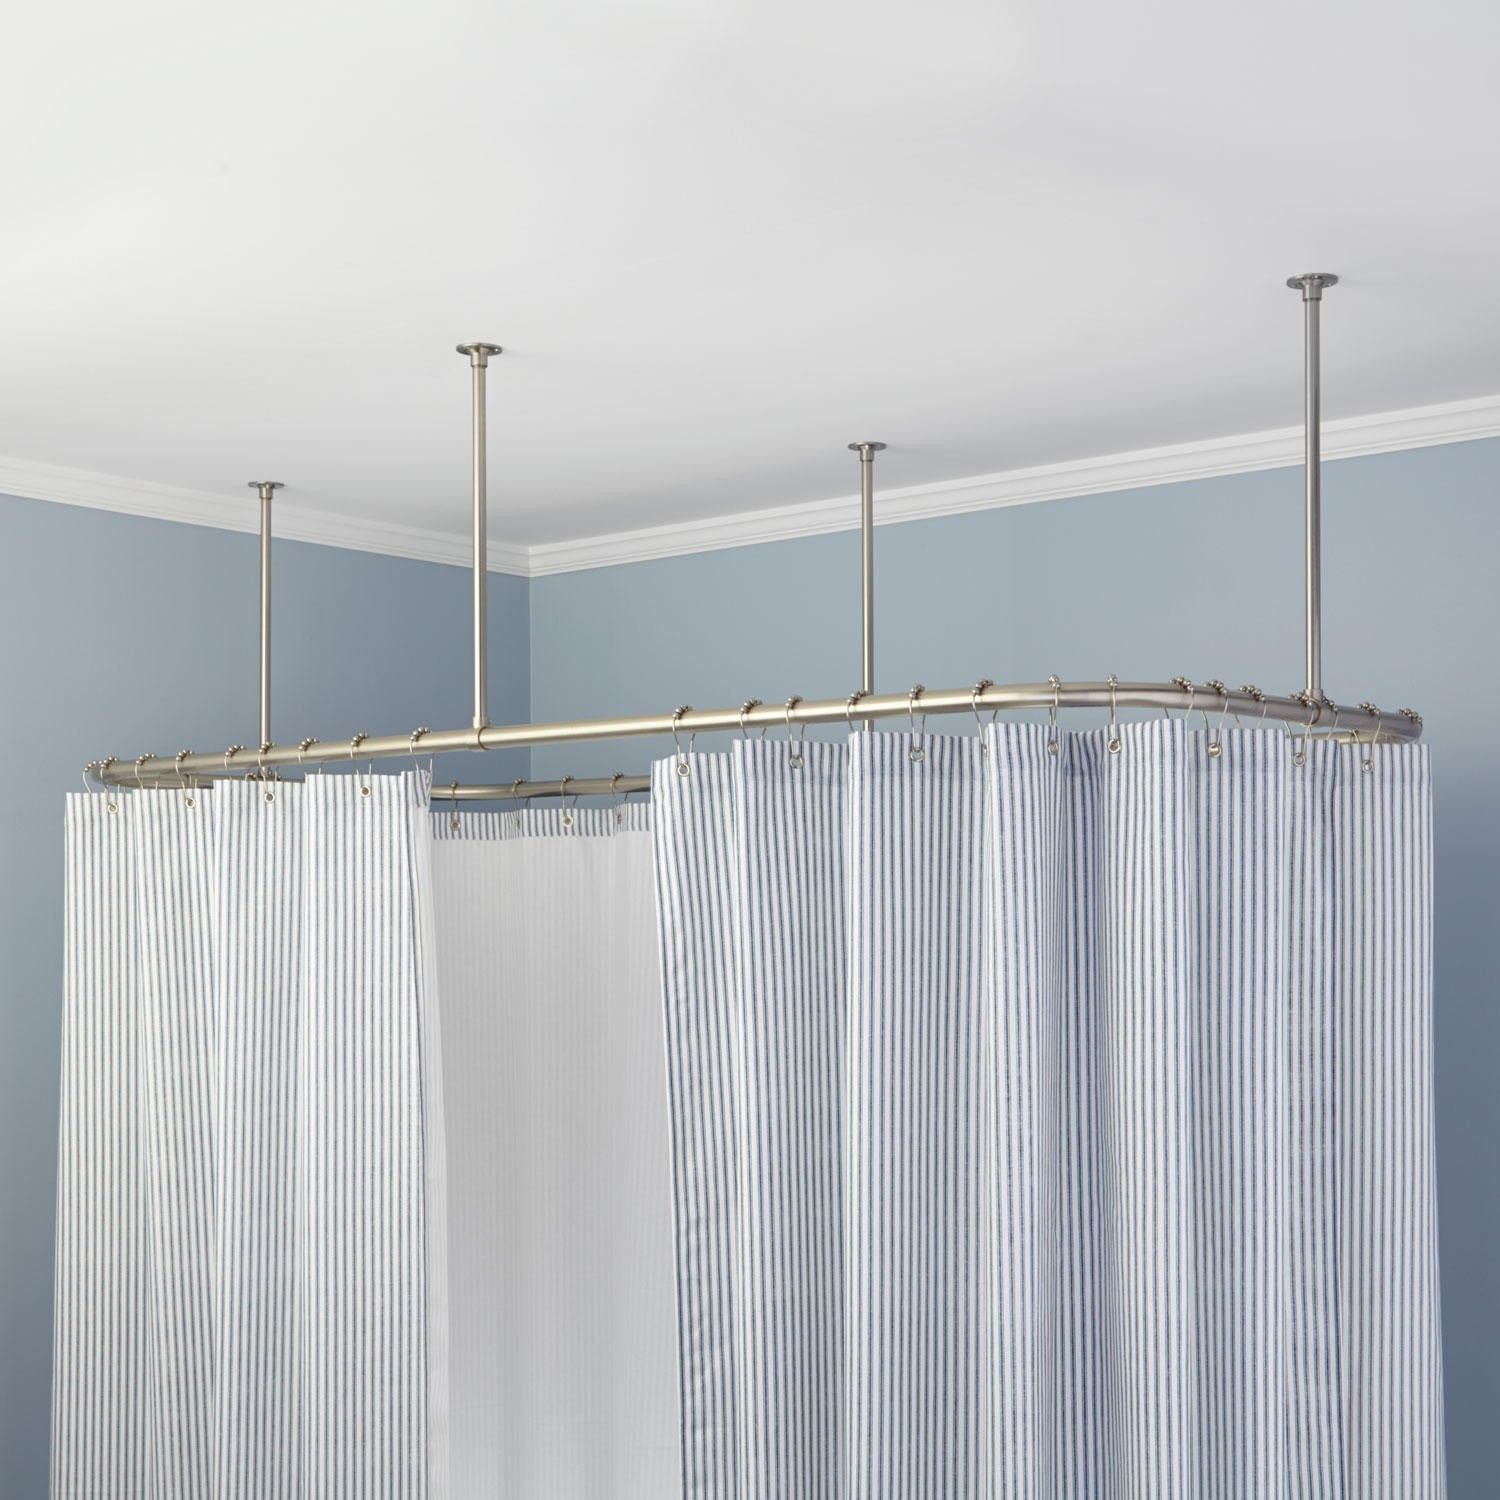 Ceiling Mounted Shower Curtain Rods rectangularceilingmountshowercurtainrod signature hardware 8393 by xevi.us